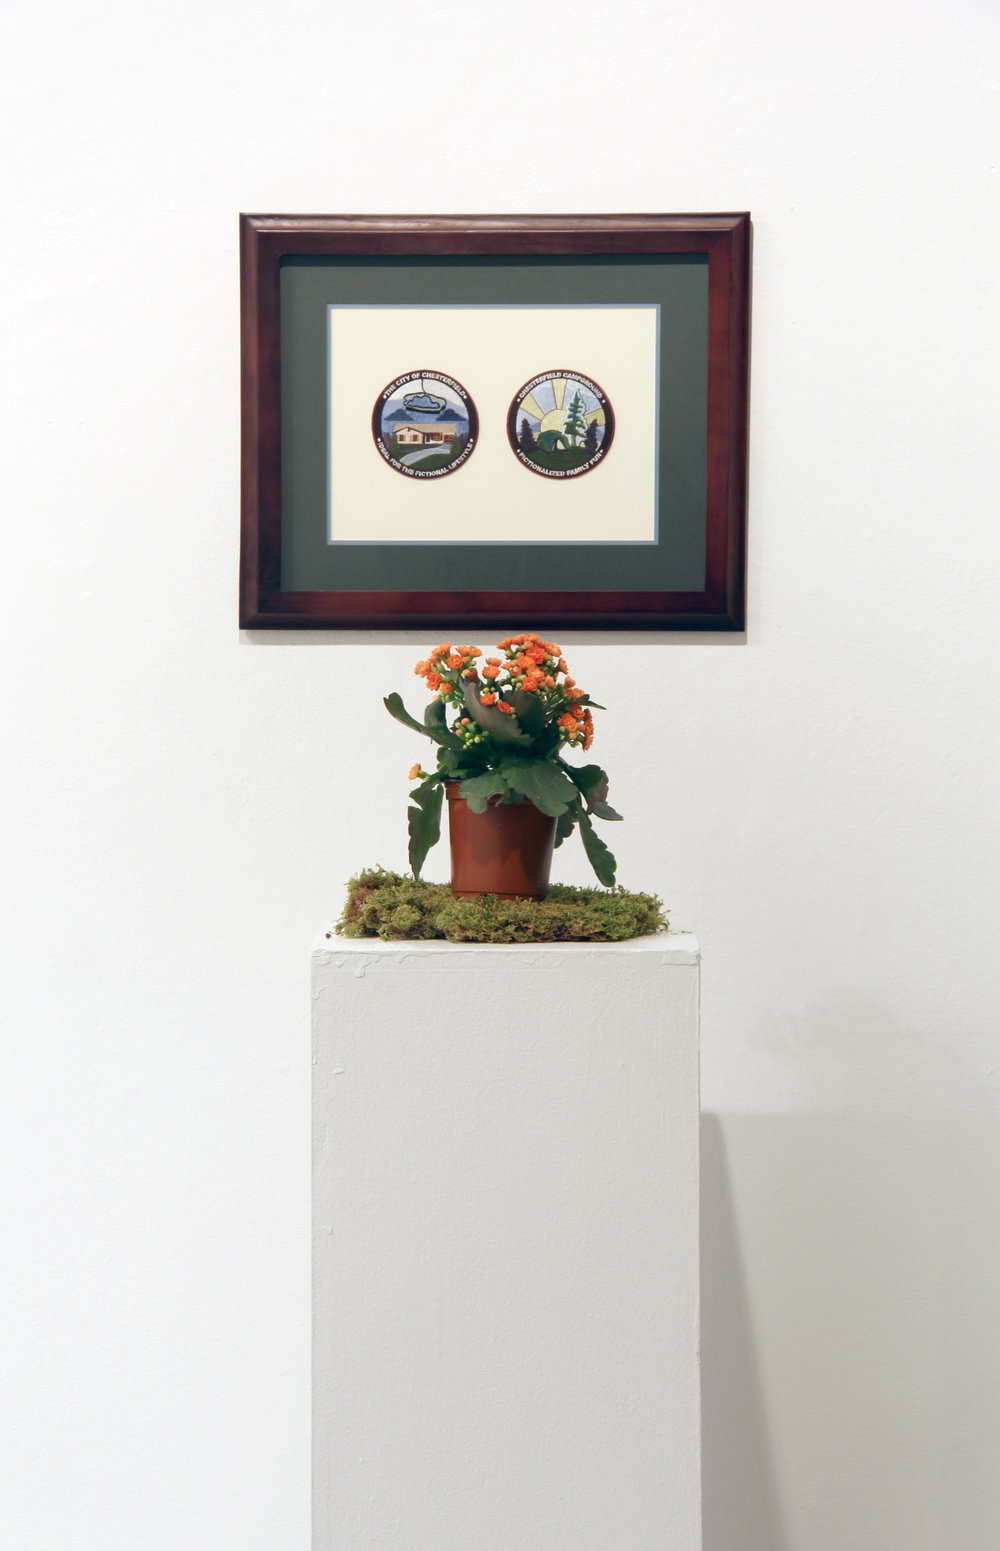 'Welcome to Chesterfield' at Anna Leonowens Gallery (2012)